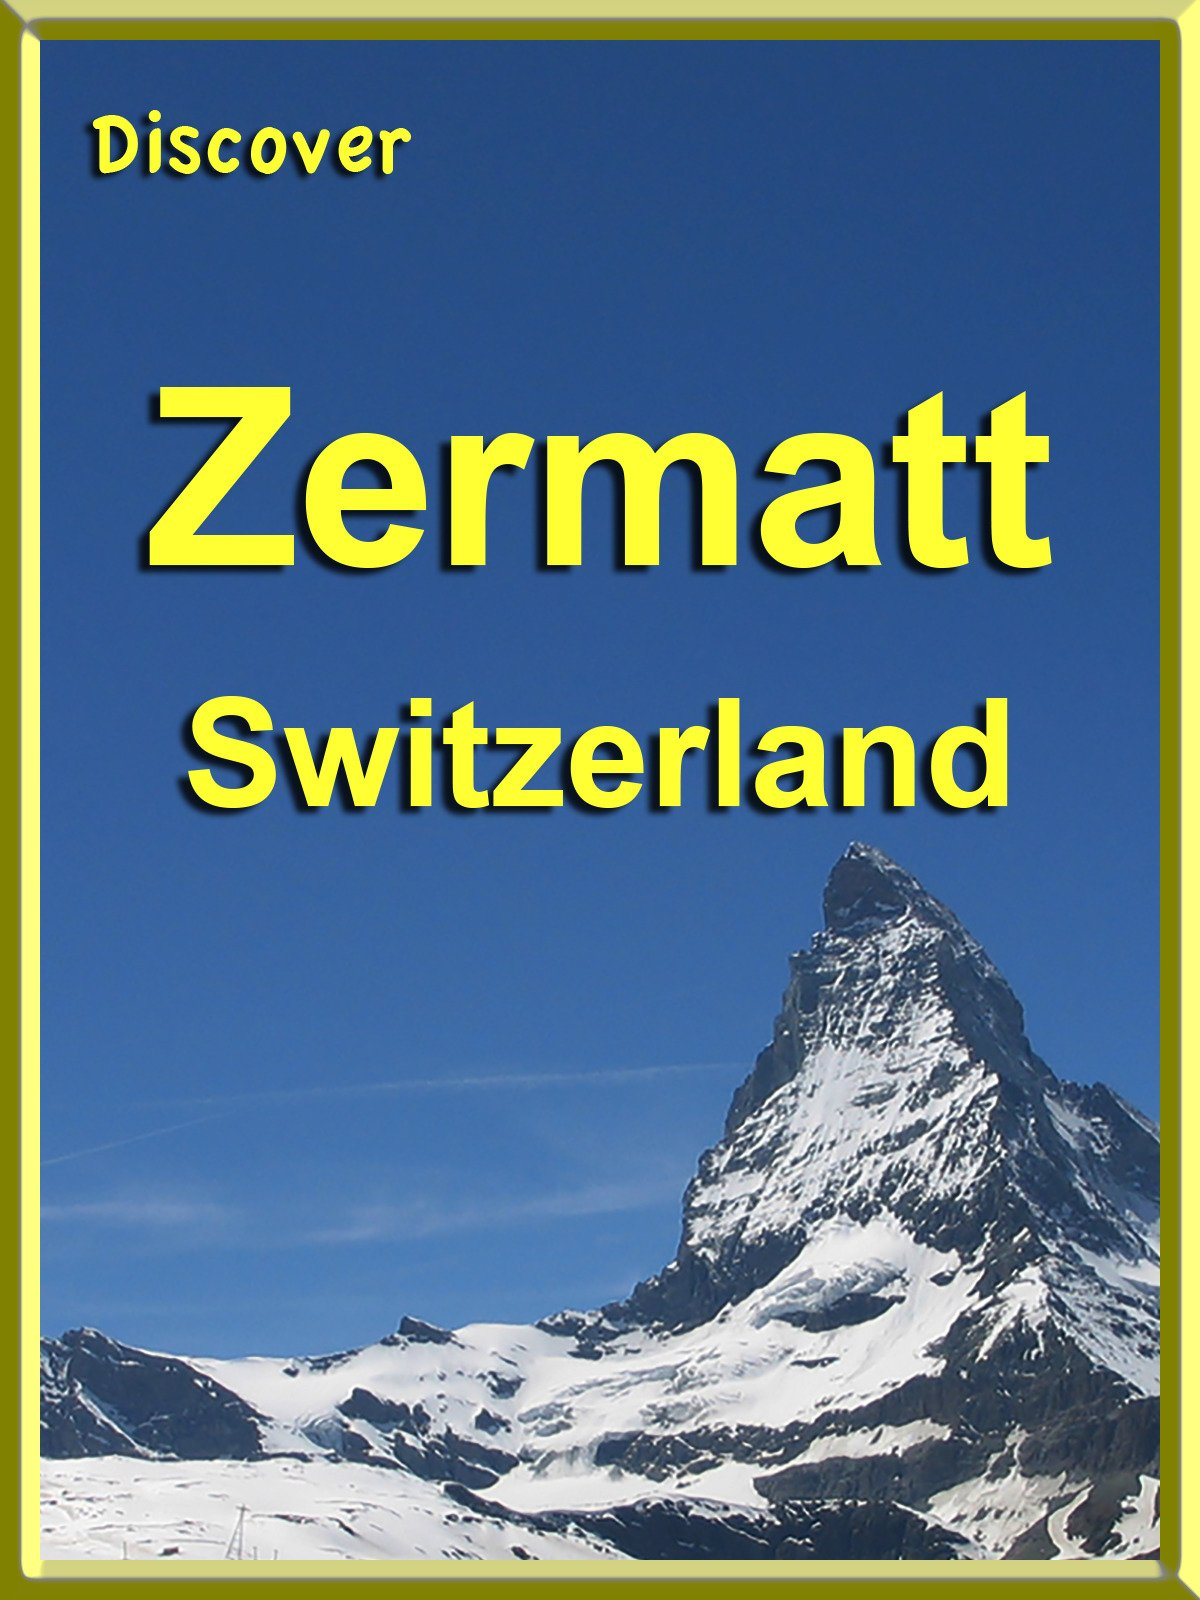 Discover Zermatt, Switzerland